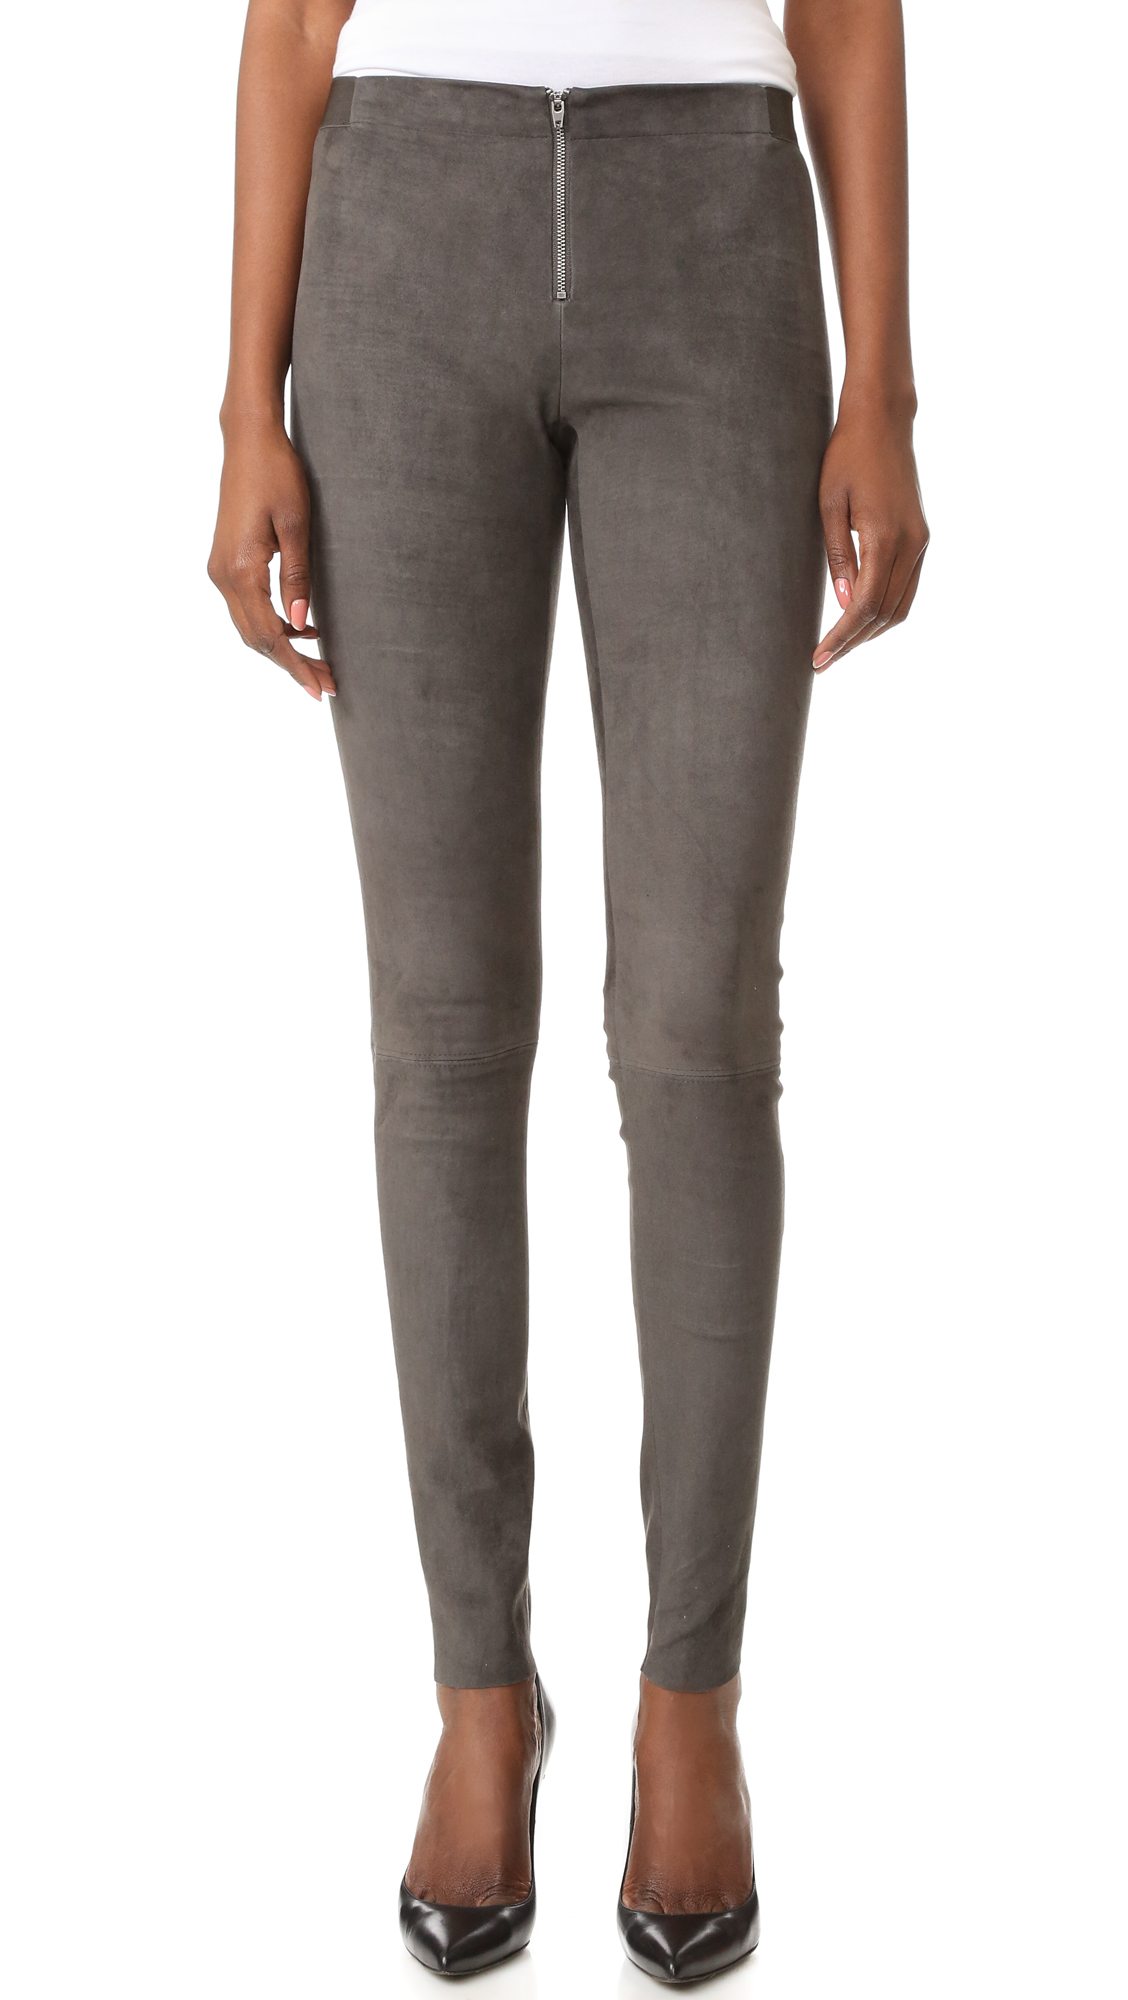 alice + olivia Front Zip Suede Leggings - Charcoal